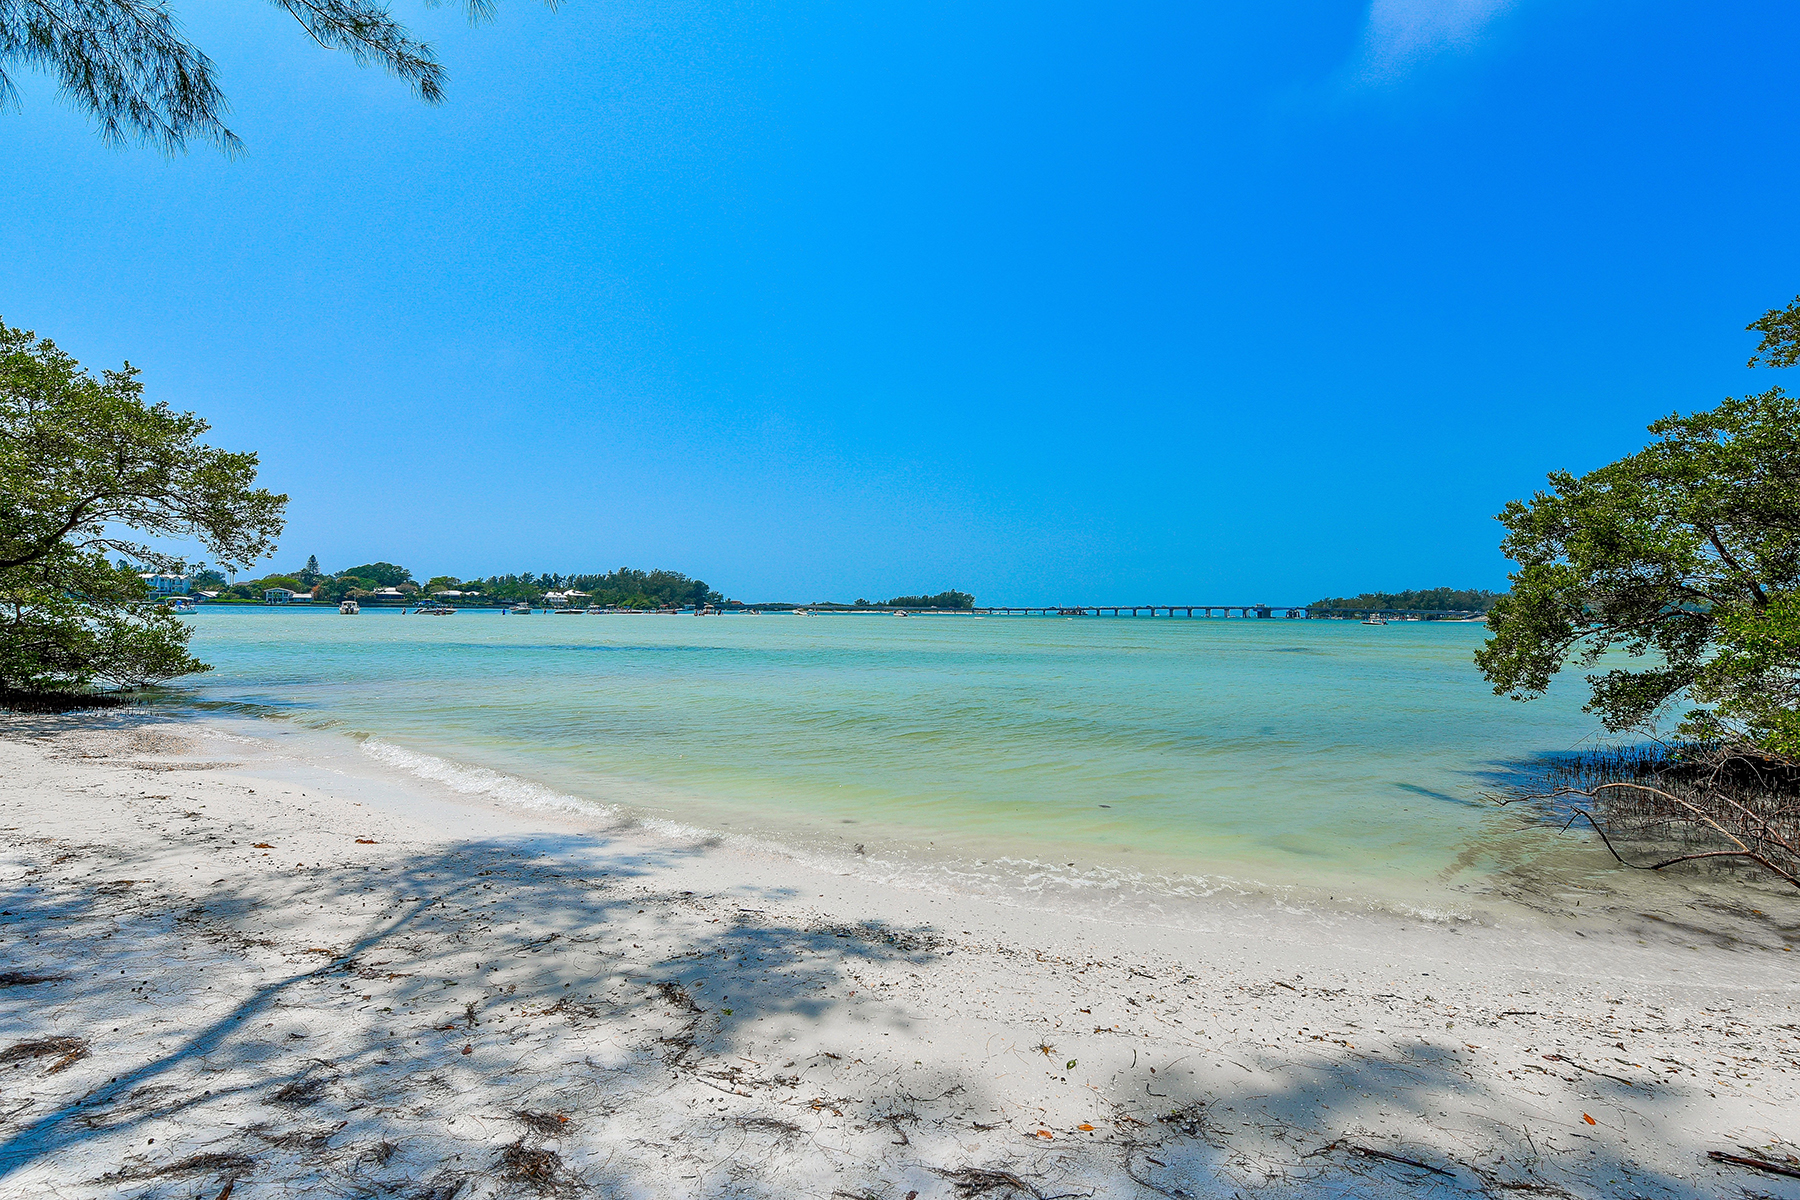 Land for Sale at LA LENAIRE ISLE 7149 La Lenaire Dr 8 / 9 Longboat Key, Florida, 34228 United States